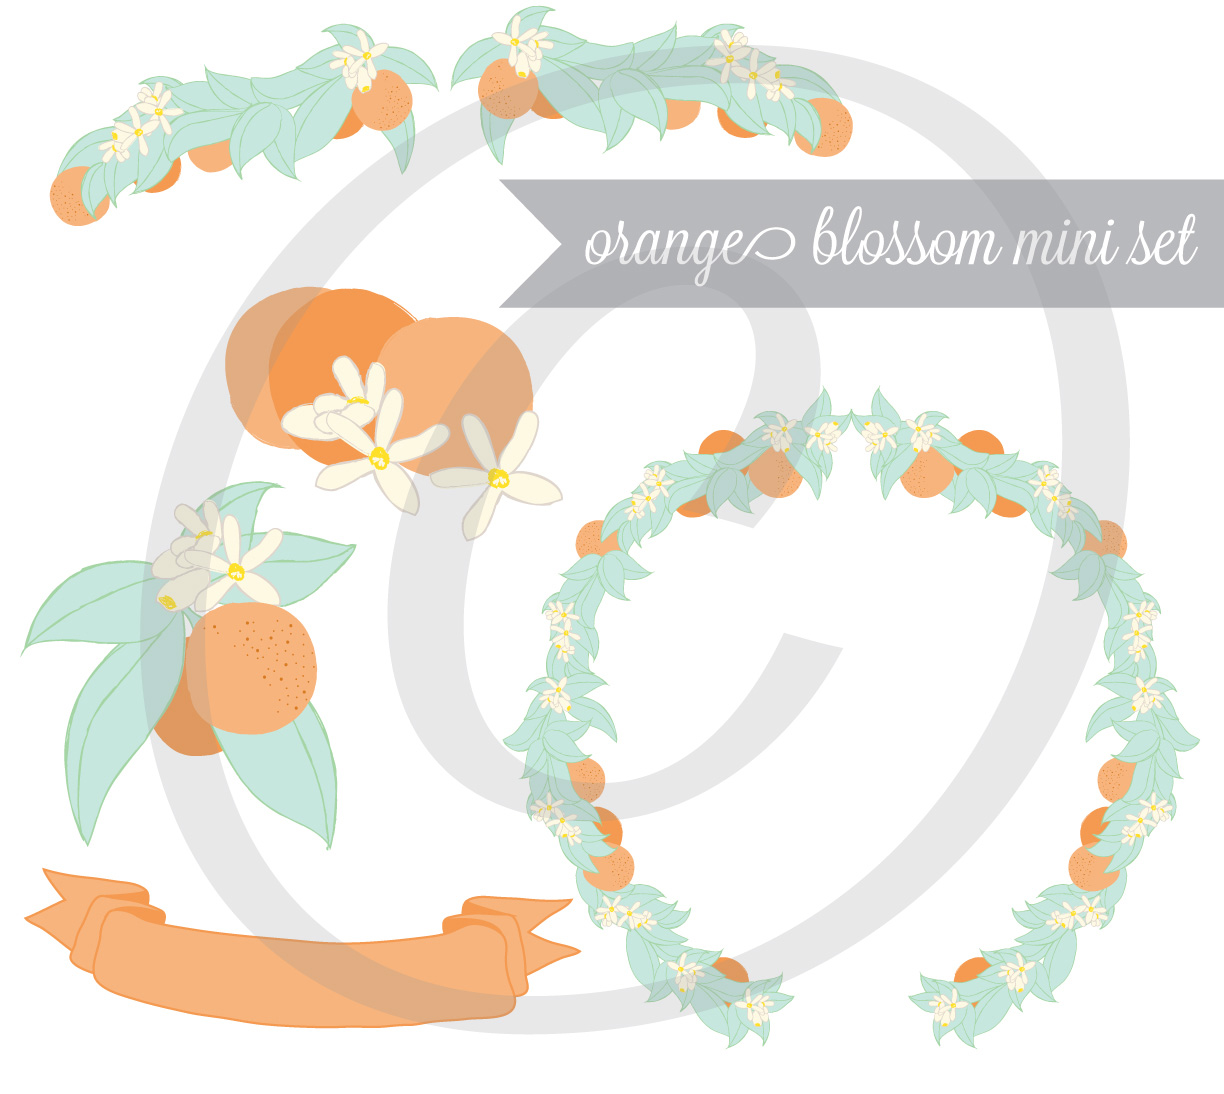 Orange Blossom Mini Set